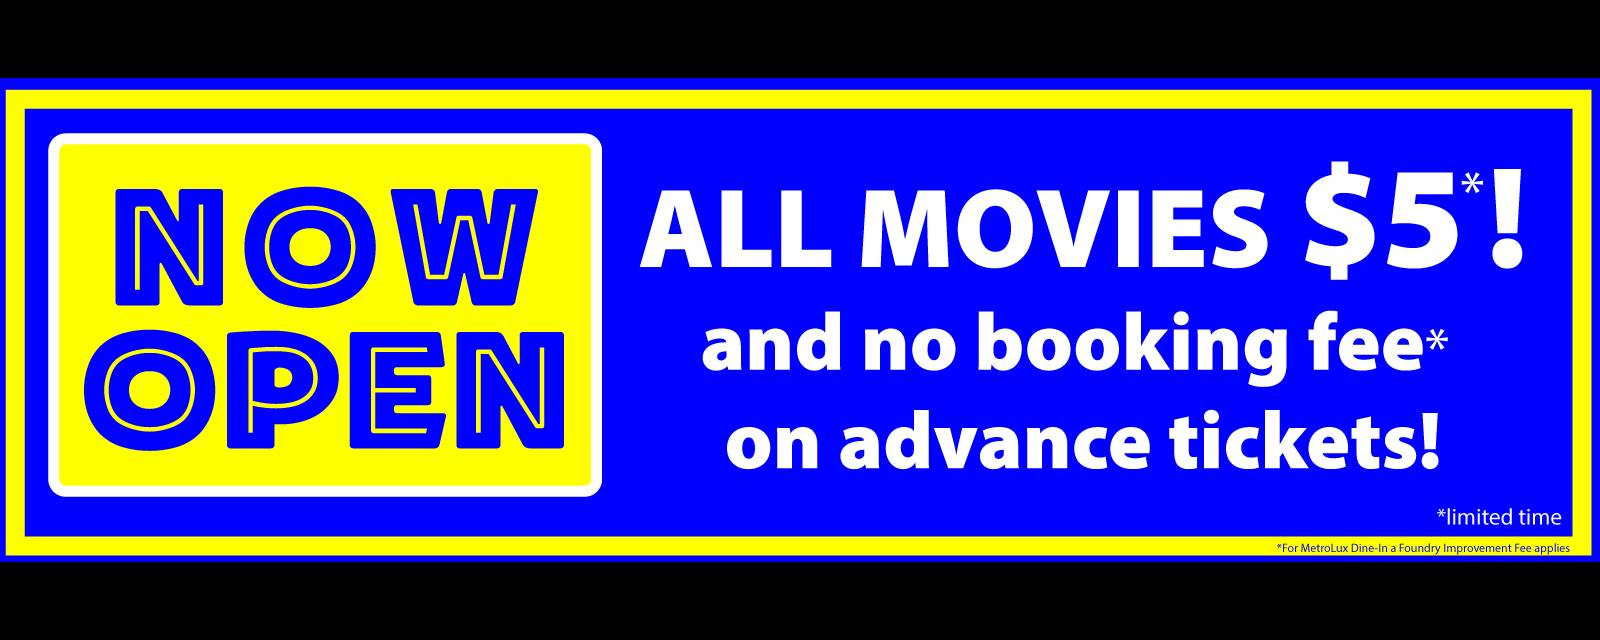 Now Open $5 All Movies